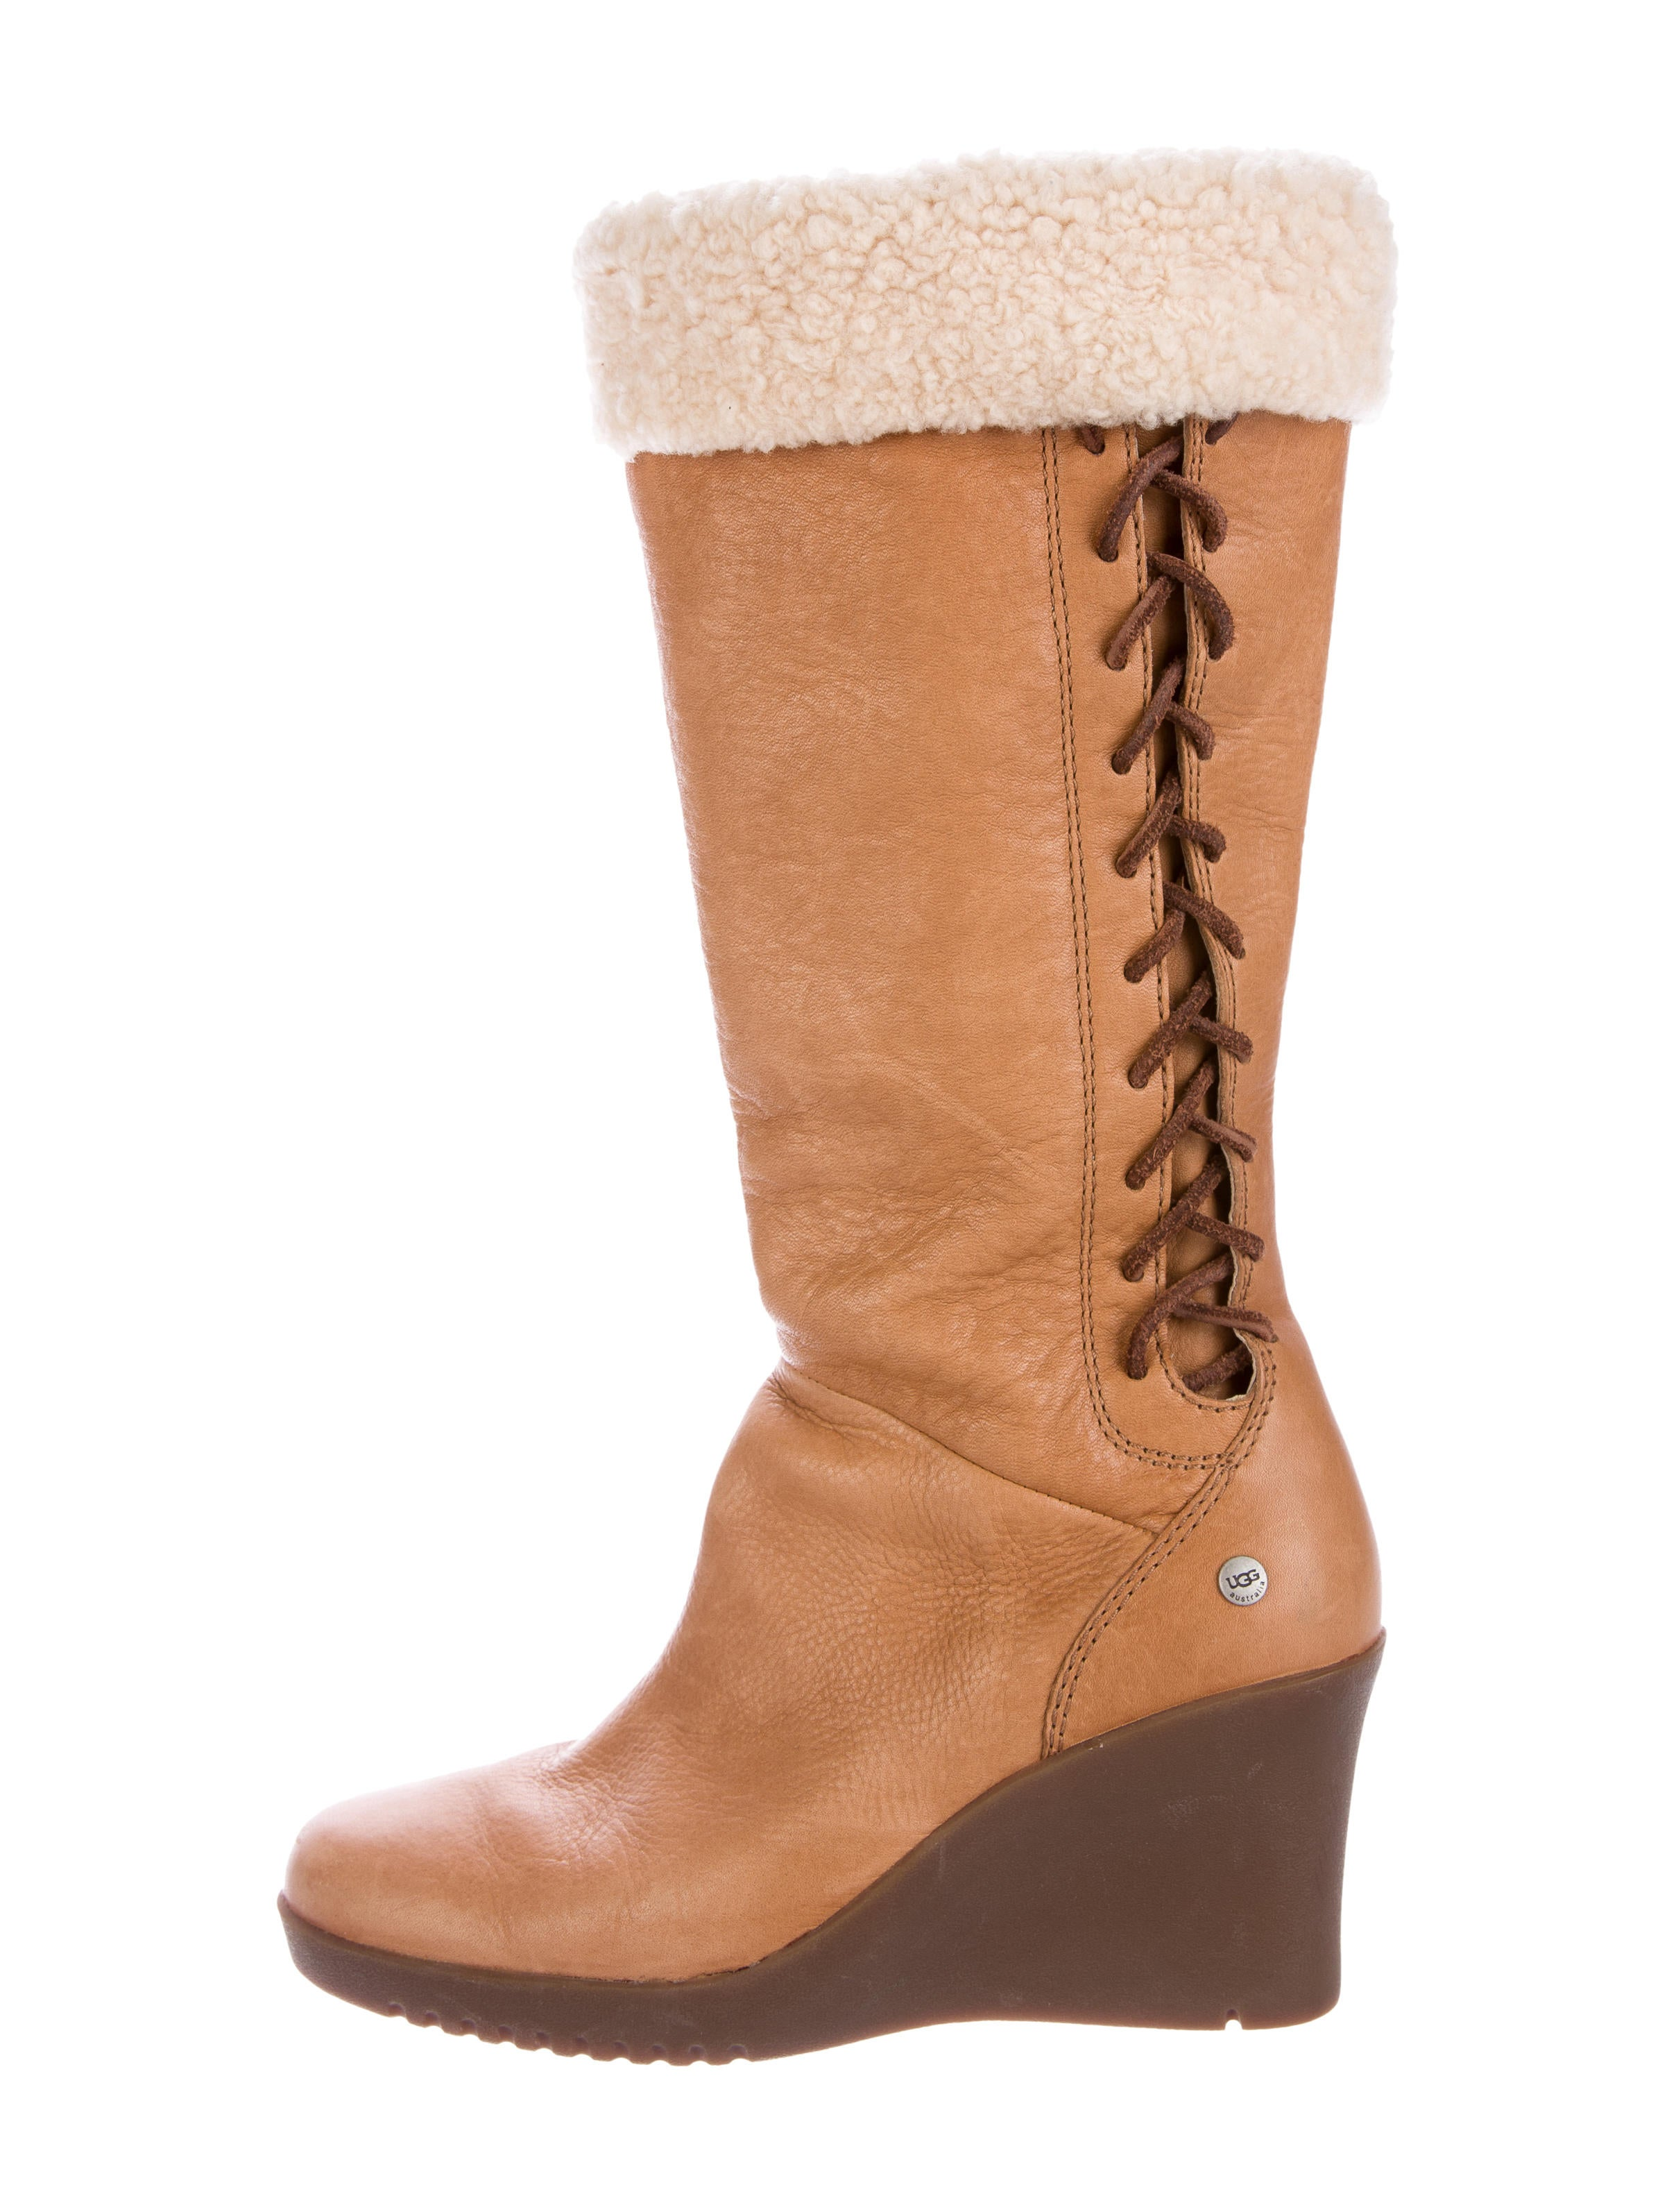 535195f47a8 Will Uggs Have A Black Friday Sale | Fondation Entente Franco ...